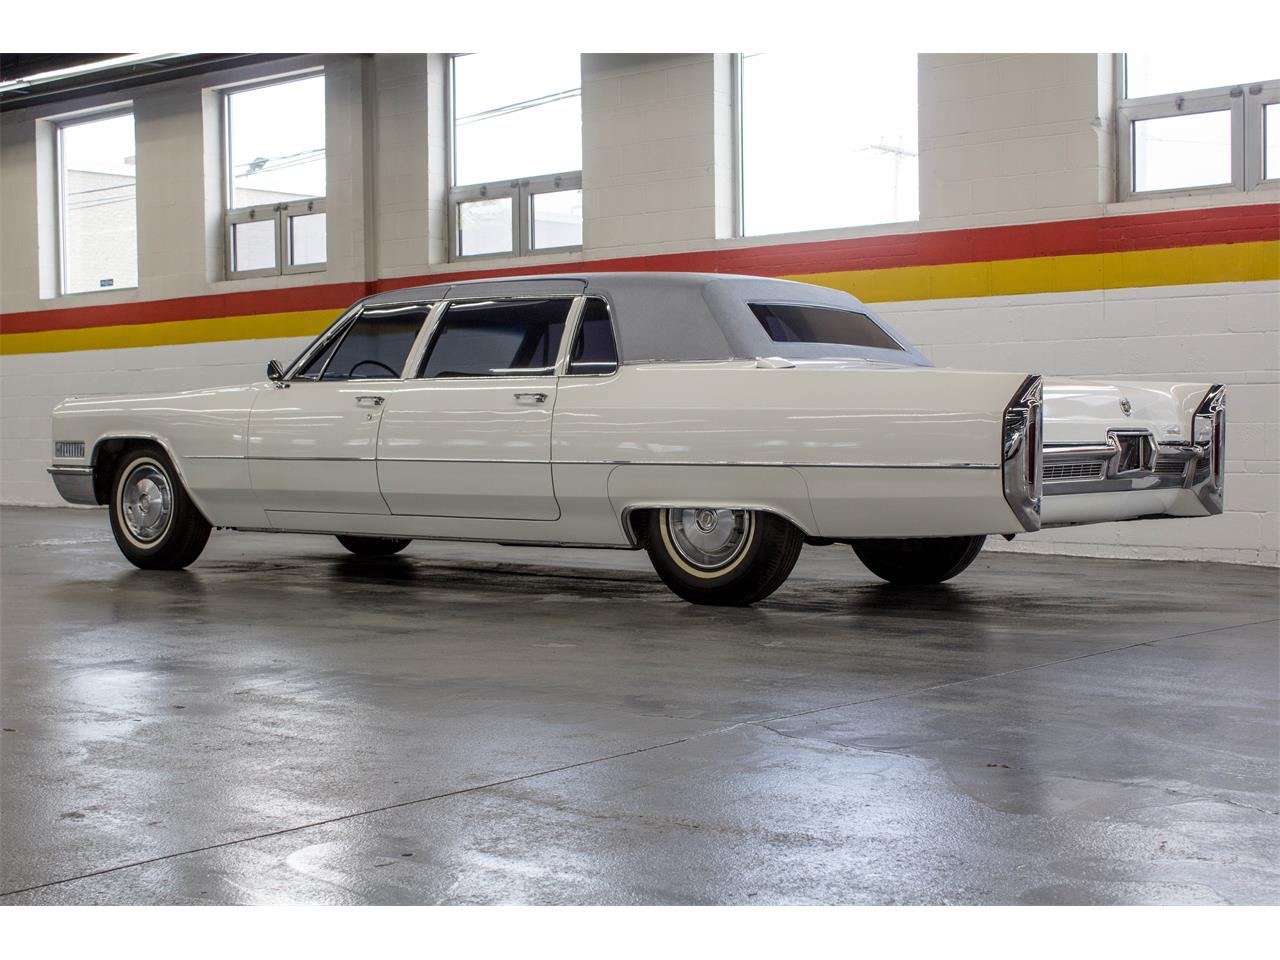 Large Picture of Classic '66 Cadillac Fleetwood Limousine located in Quebec - $49,995.00 Offered by John Scotti Classic Cars - NKXQ